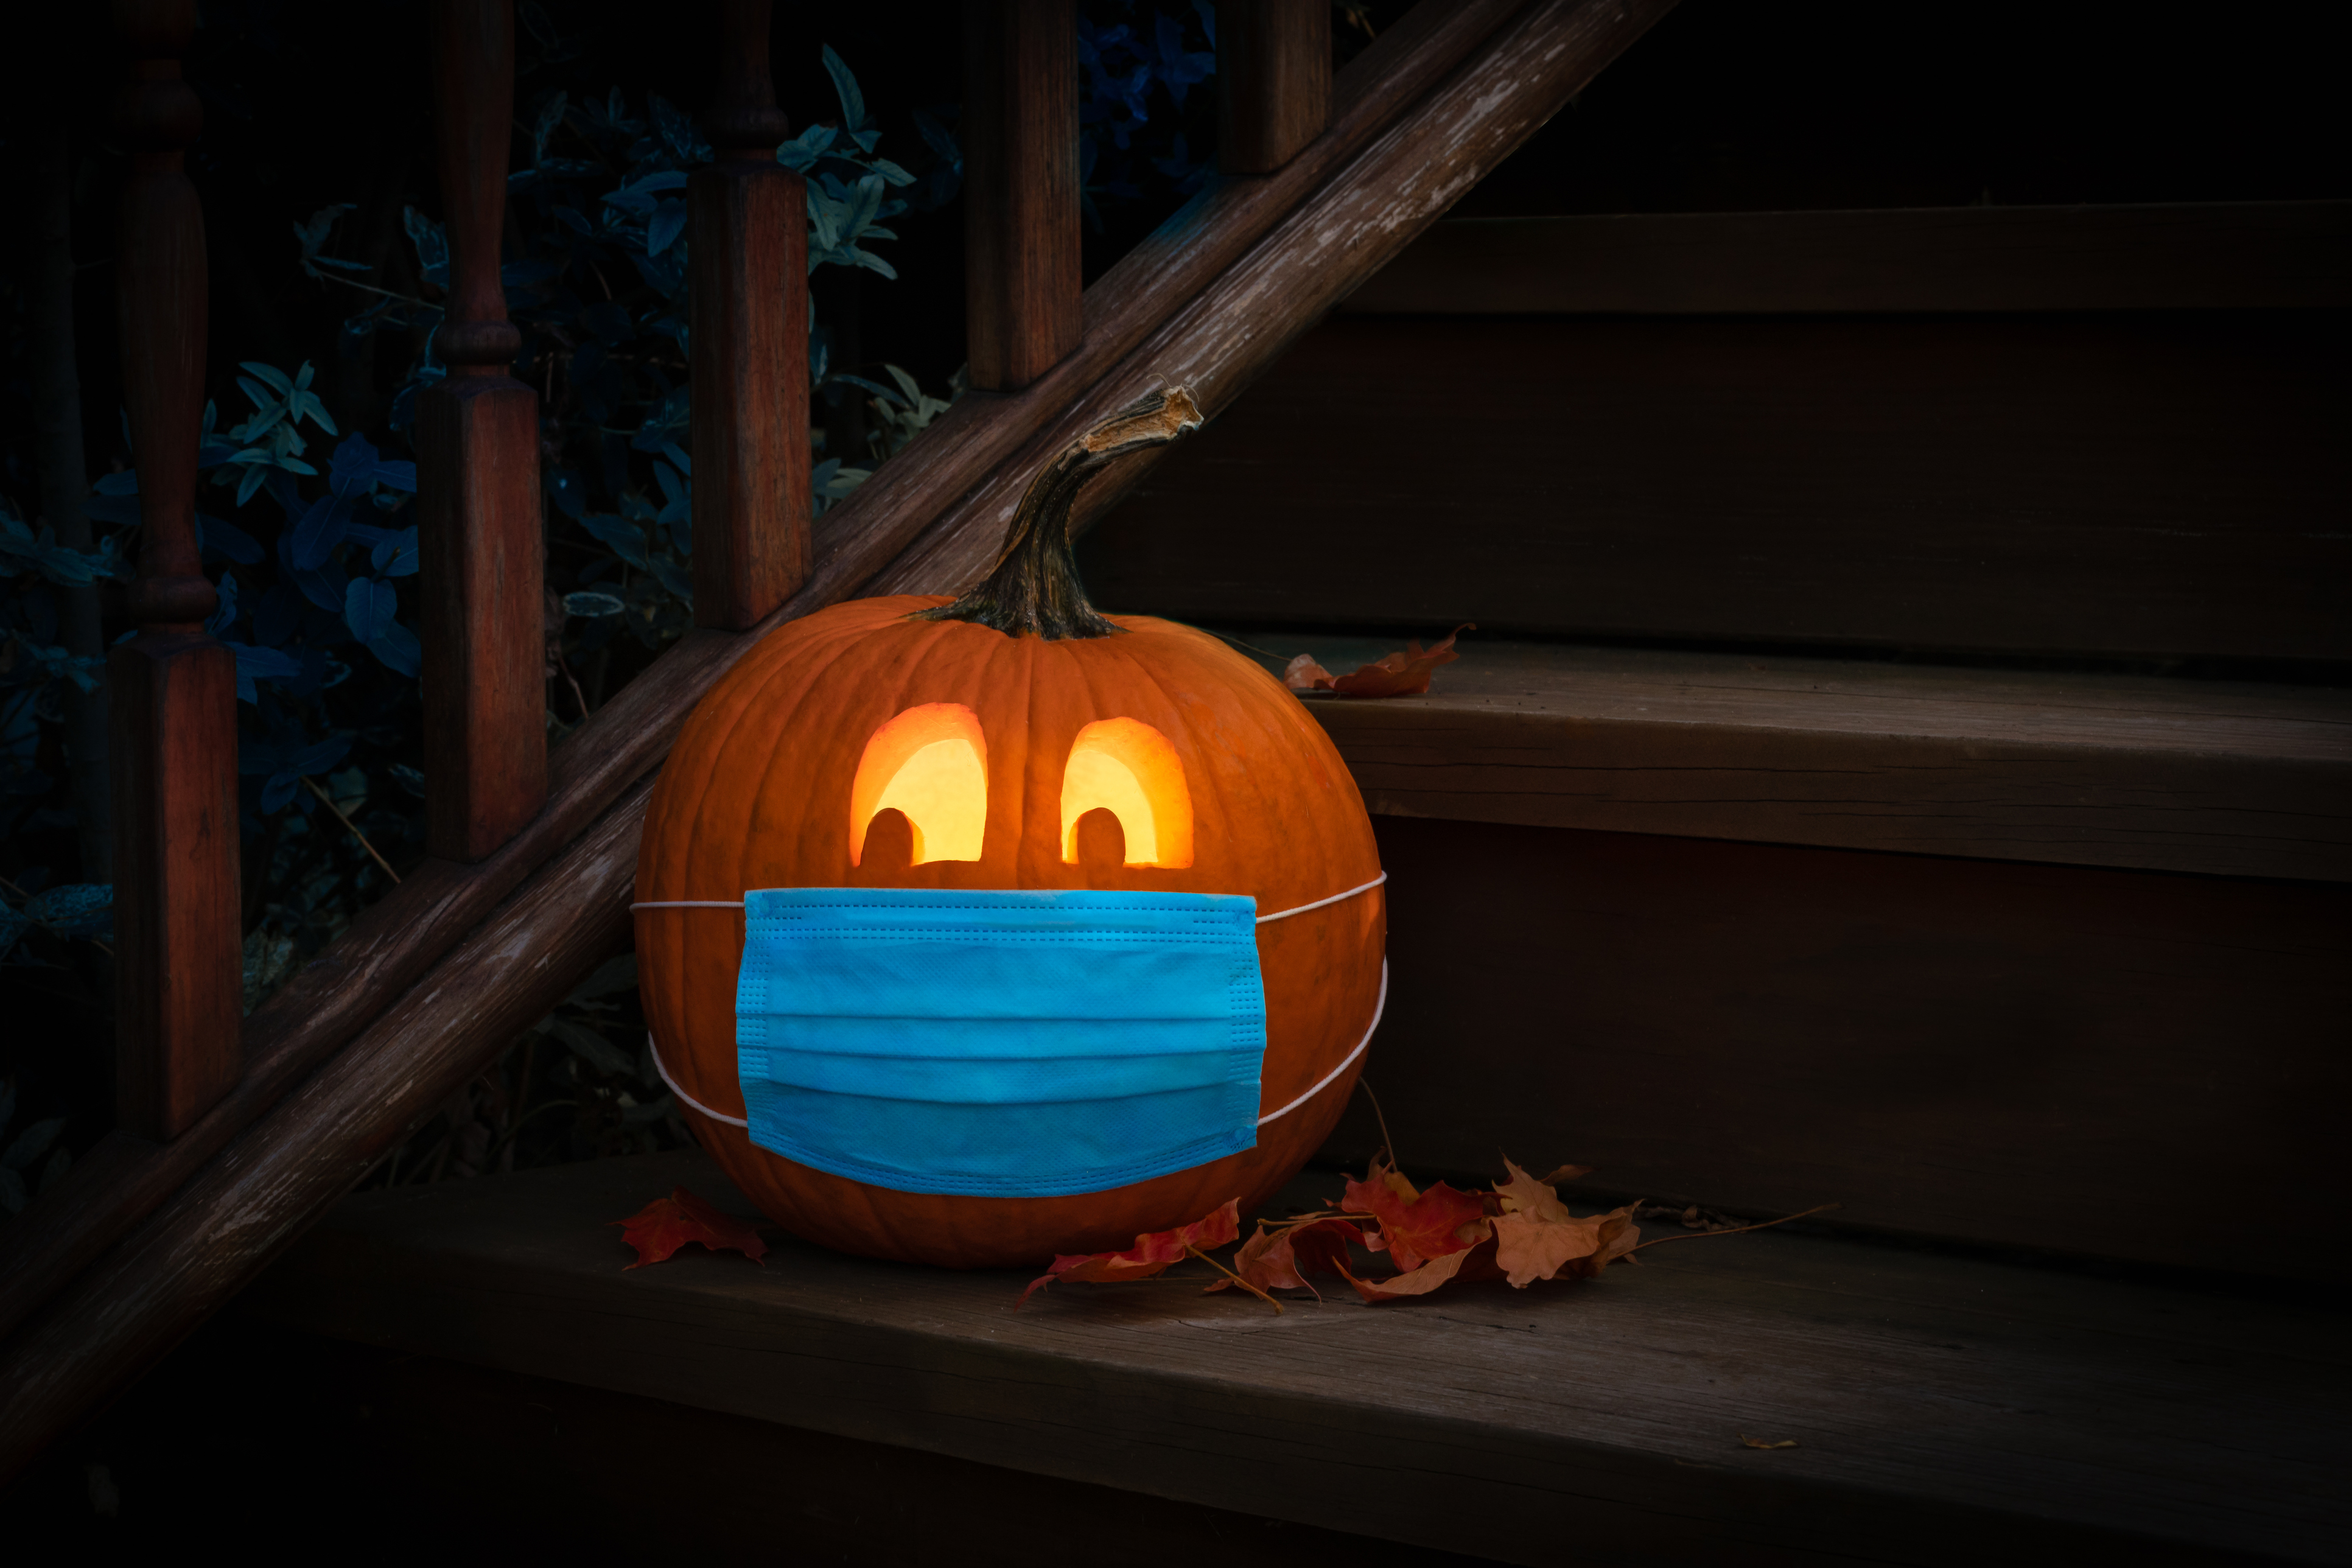 Halloween is so much fun because it's not like other nights of the year. How To Have A Fun Safe Halloween With These Alternative Activities Orange County Register